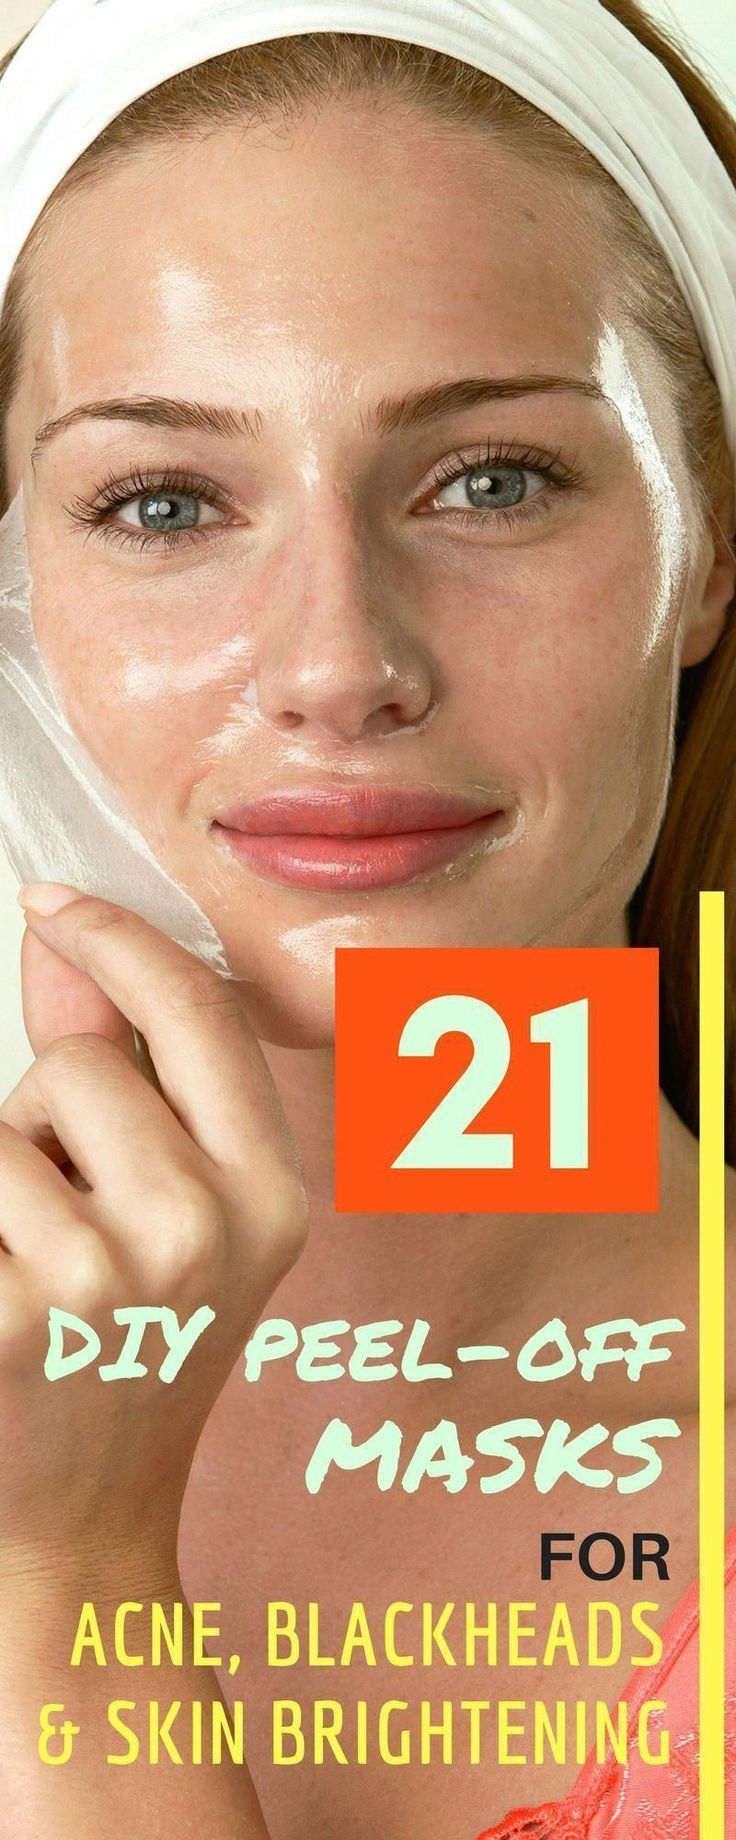 21 DIY Peel Off Face Masks For Blackheads, Acne and Skin Brightening #FaceMasks …